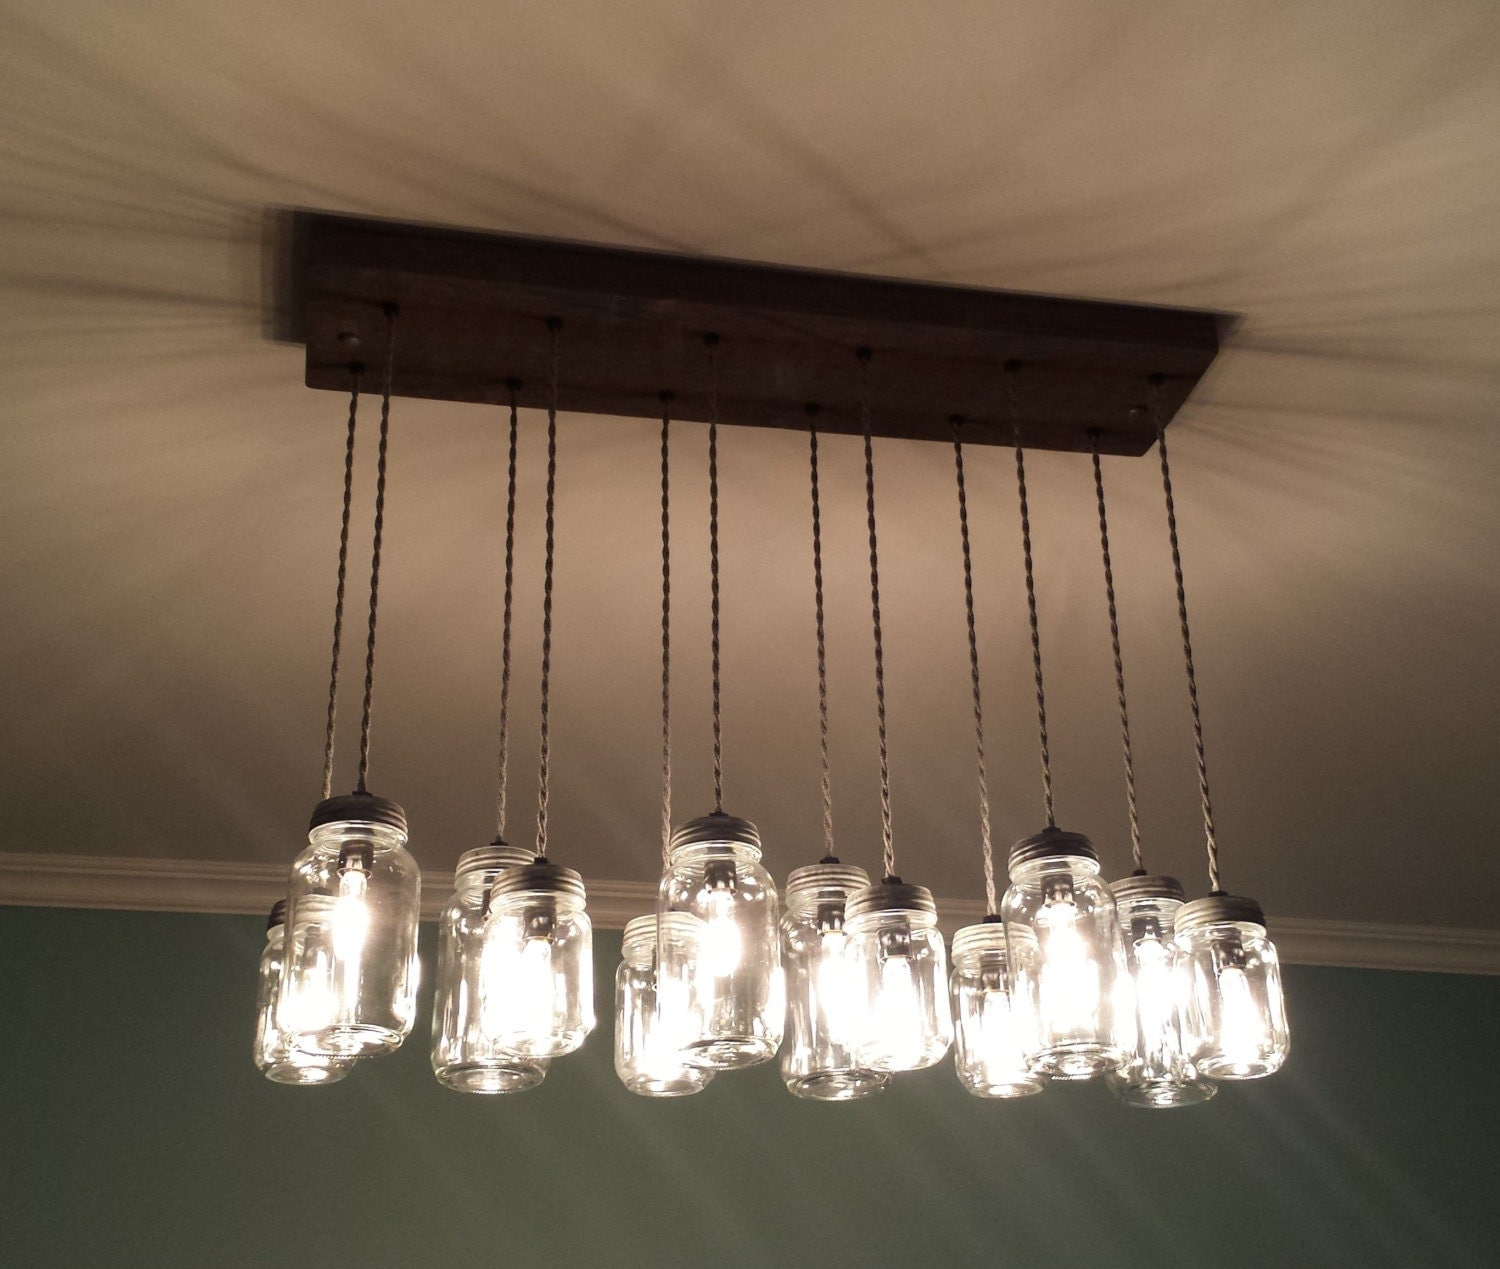 12 light diy mason jar chandelier rustic cedar rustic wood